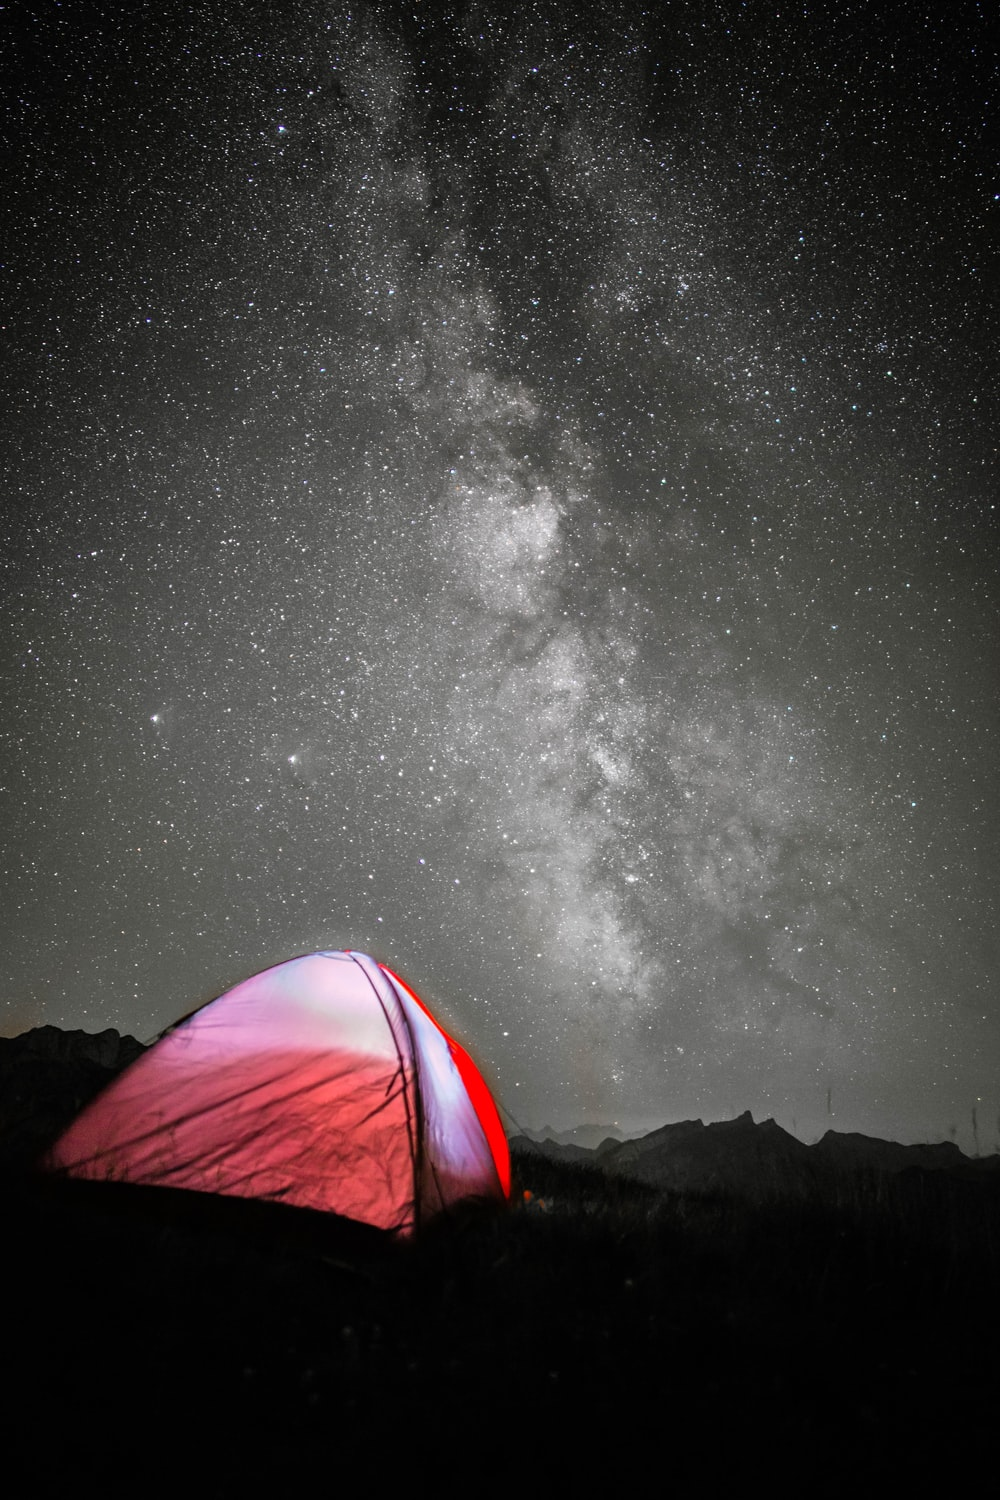 red tent under starry night